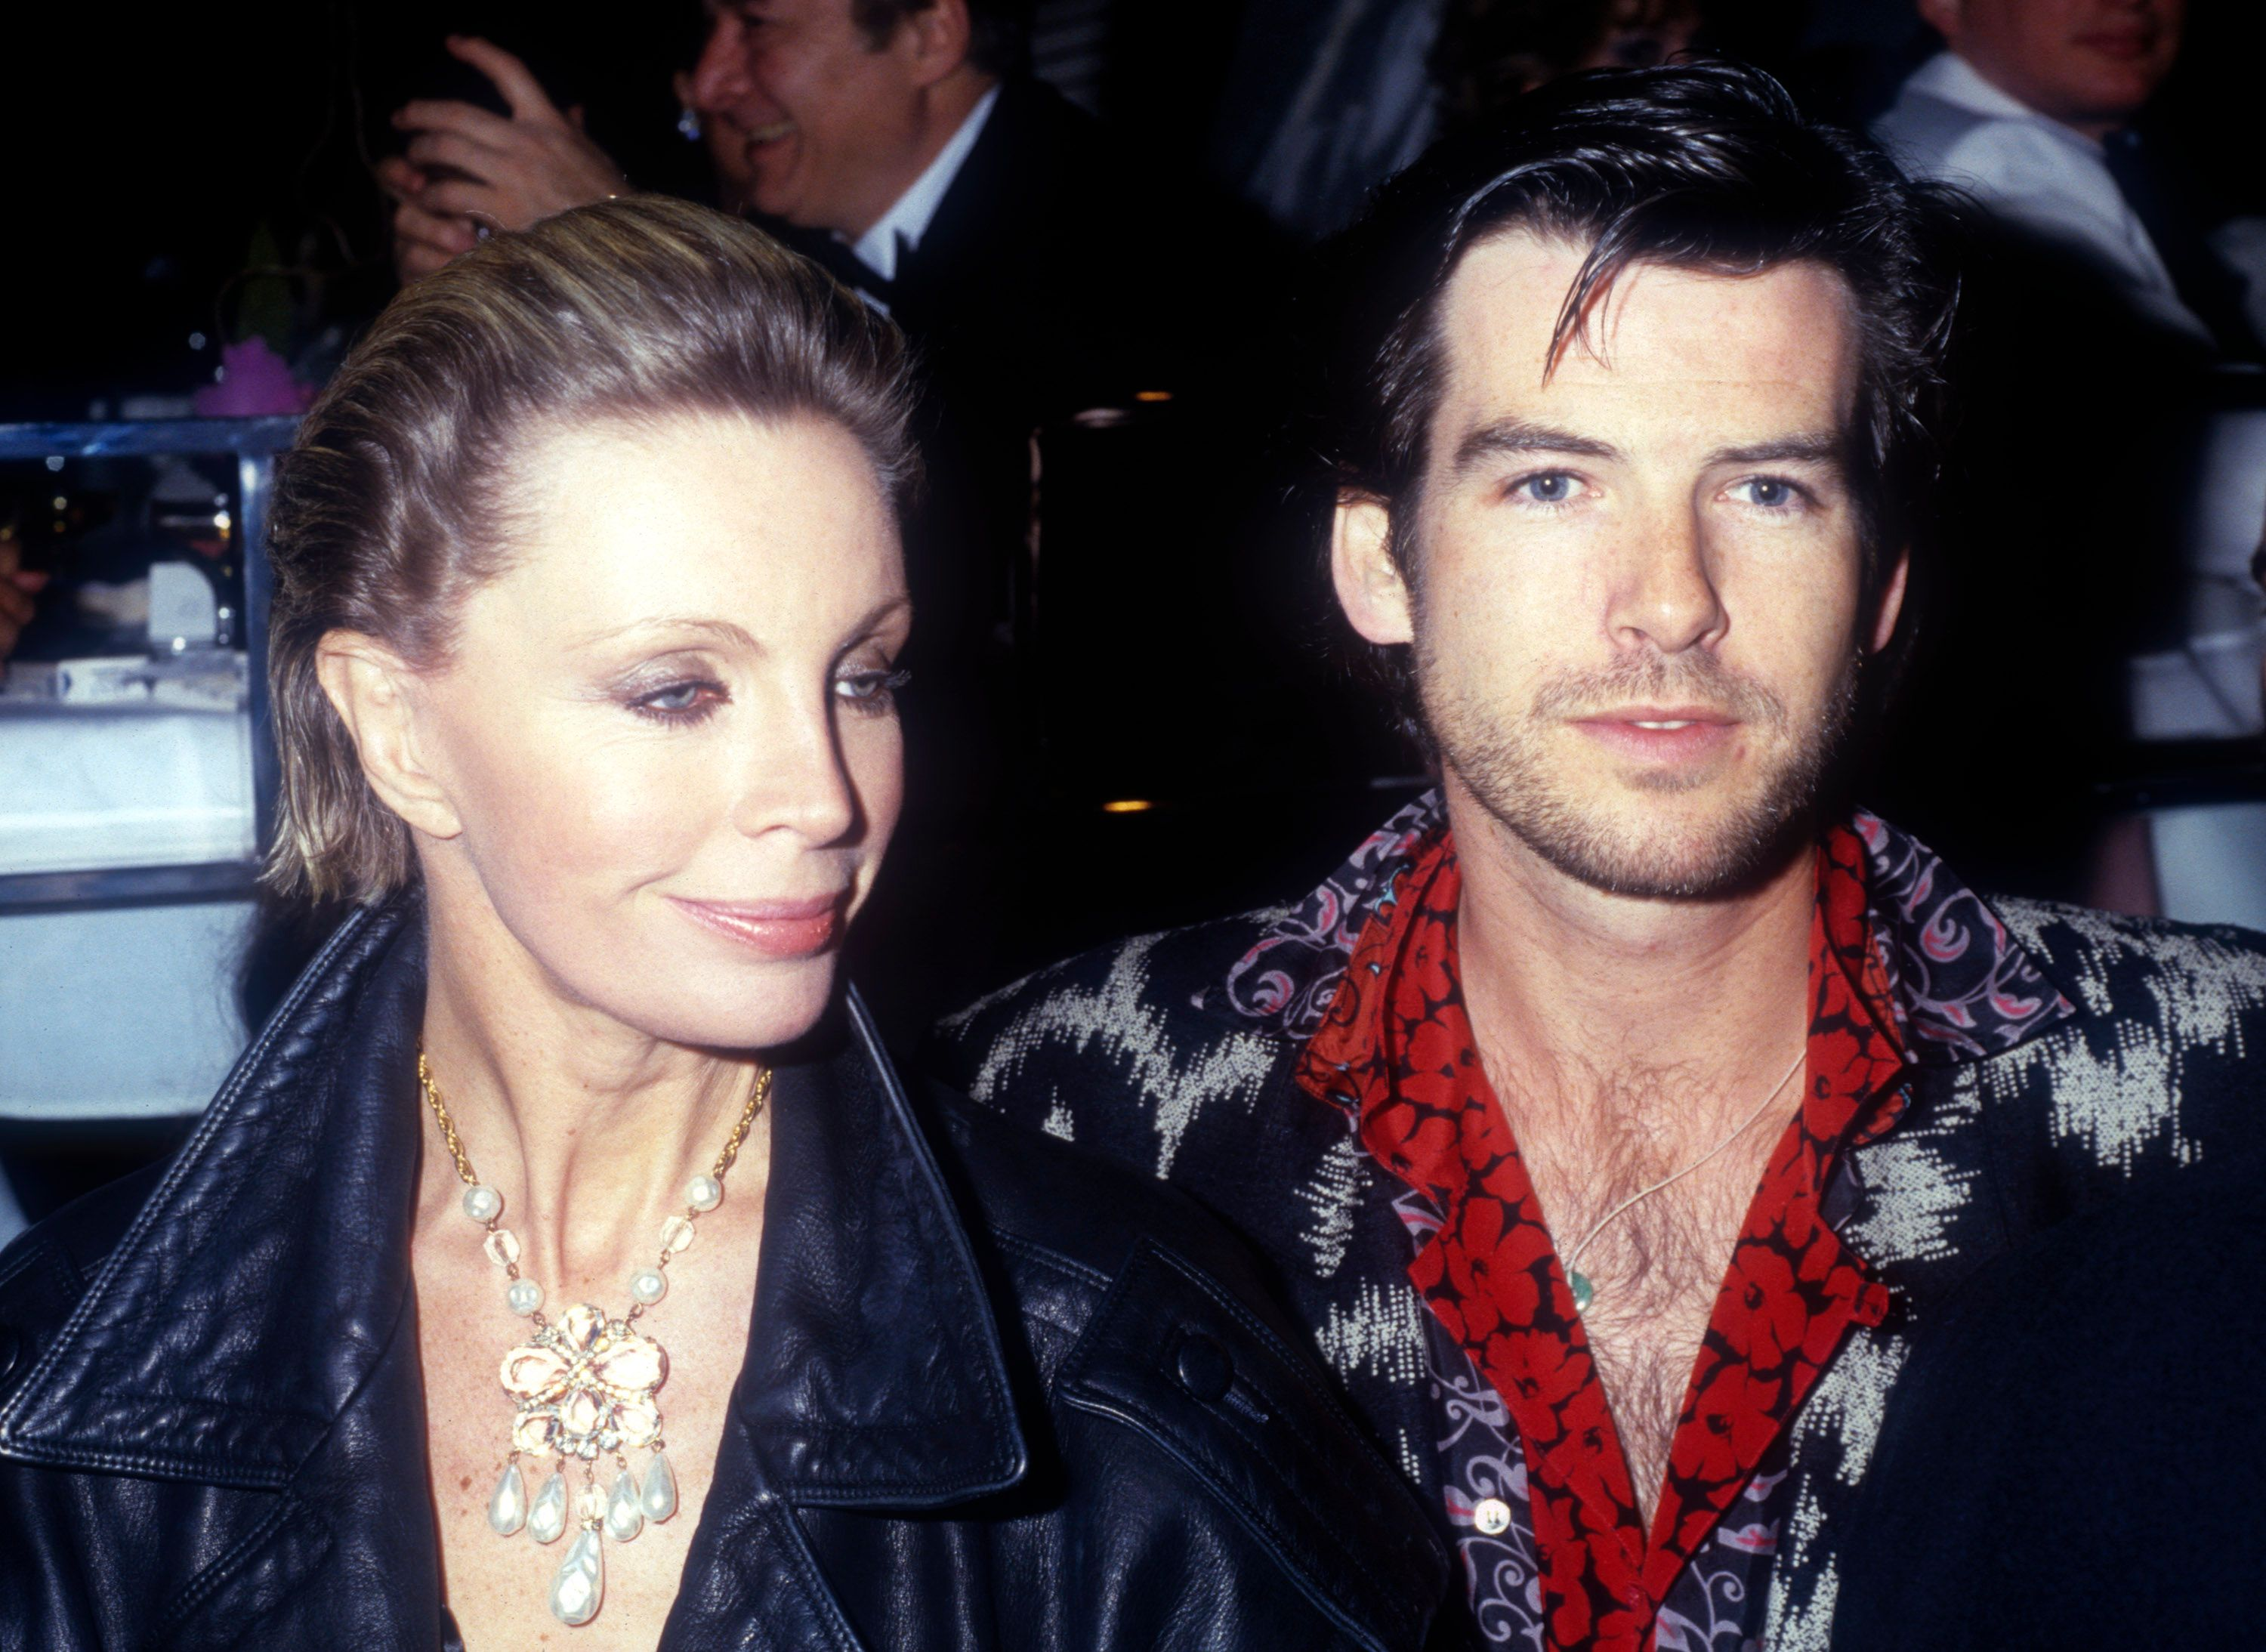 Pierce Brosnan and his now-late wife Cassandra Harris at the opening night party at Stringfellow's in 1986 in New York City | Source: Getty Images